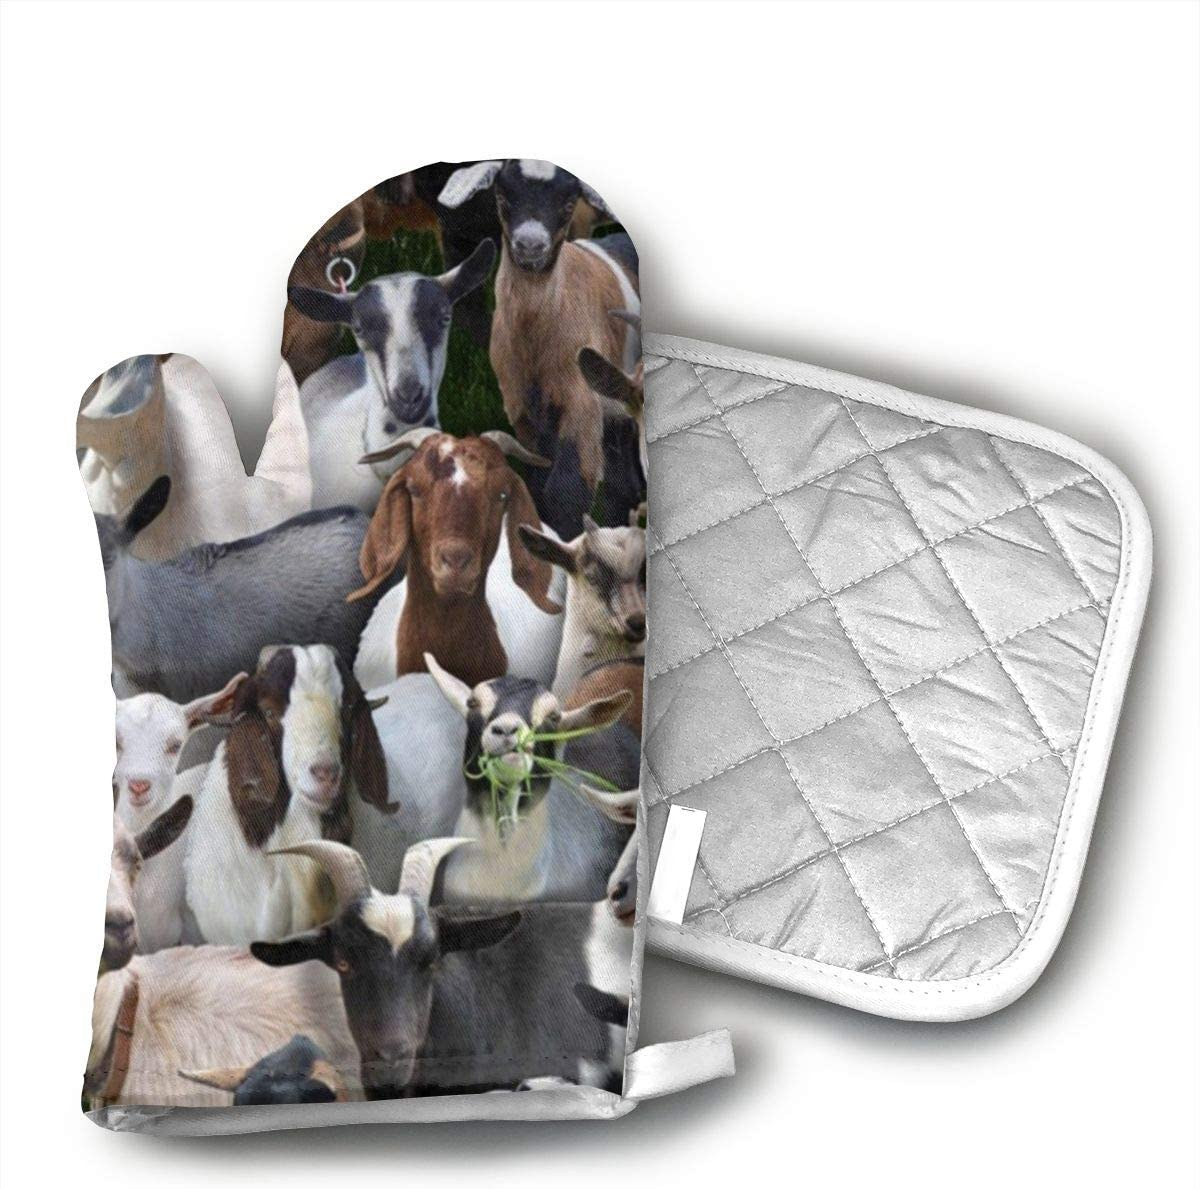 Wiqo9 Farm Animals Goats Oven Mitts and Pot Holders Kitchen Mitten Cooking Gloves,Cooking, Baking, BBQ.